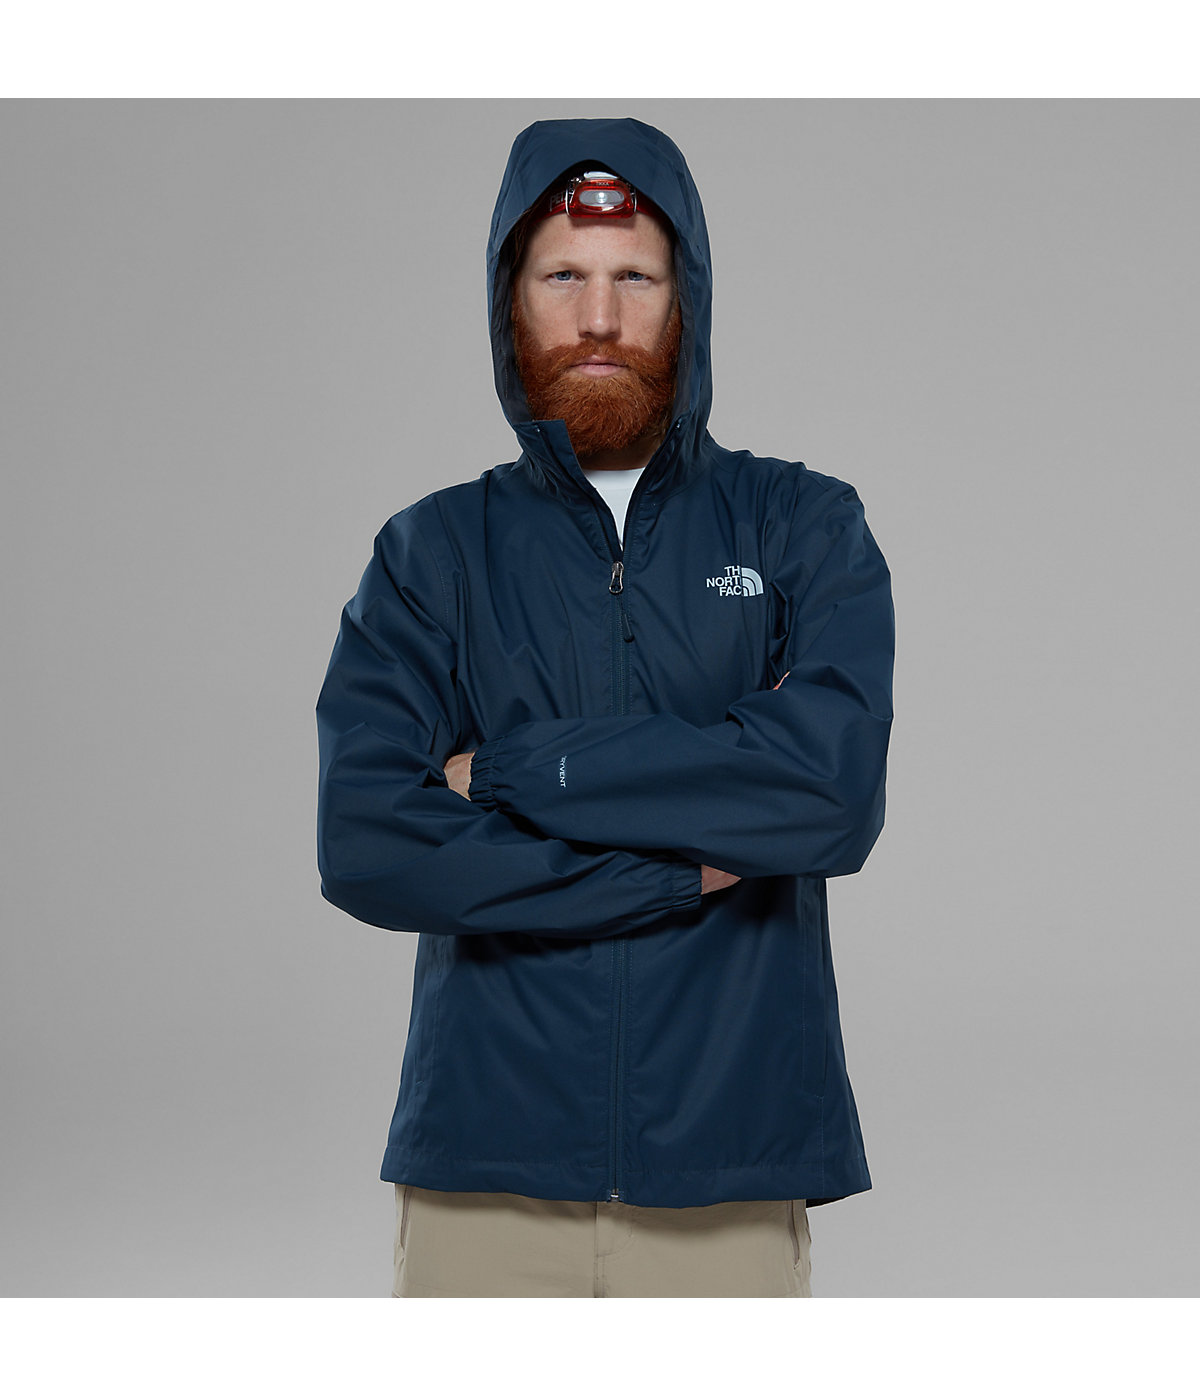 The north face. THE NORTH FACE QUEST JACKET – GIACCA UOMO BLU c736f5d720f9